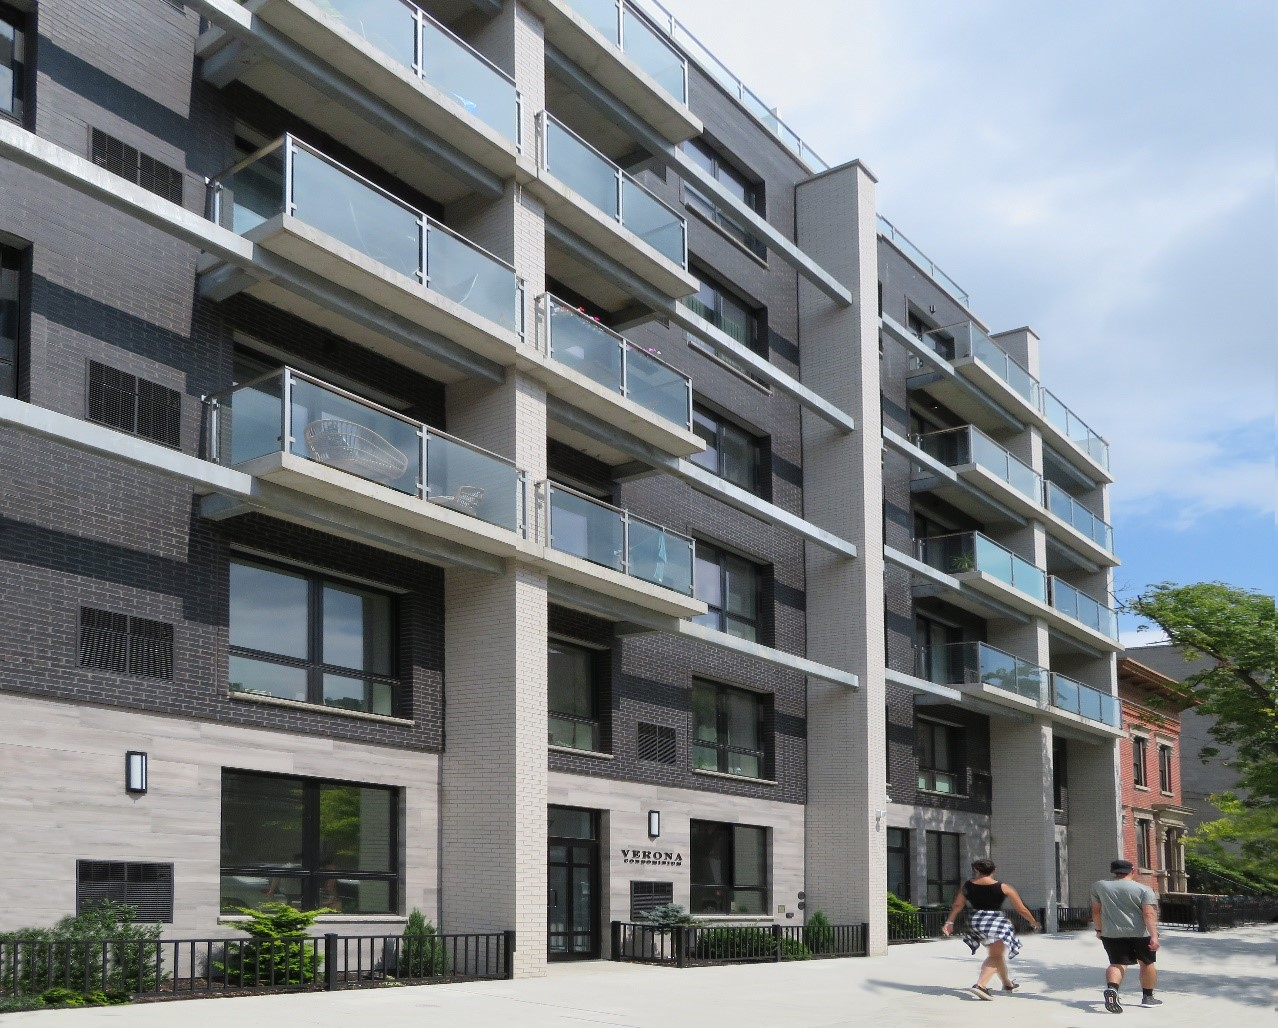 Verona Condominiums in Astoria won the award for best new construction among mixed-use buildings.